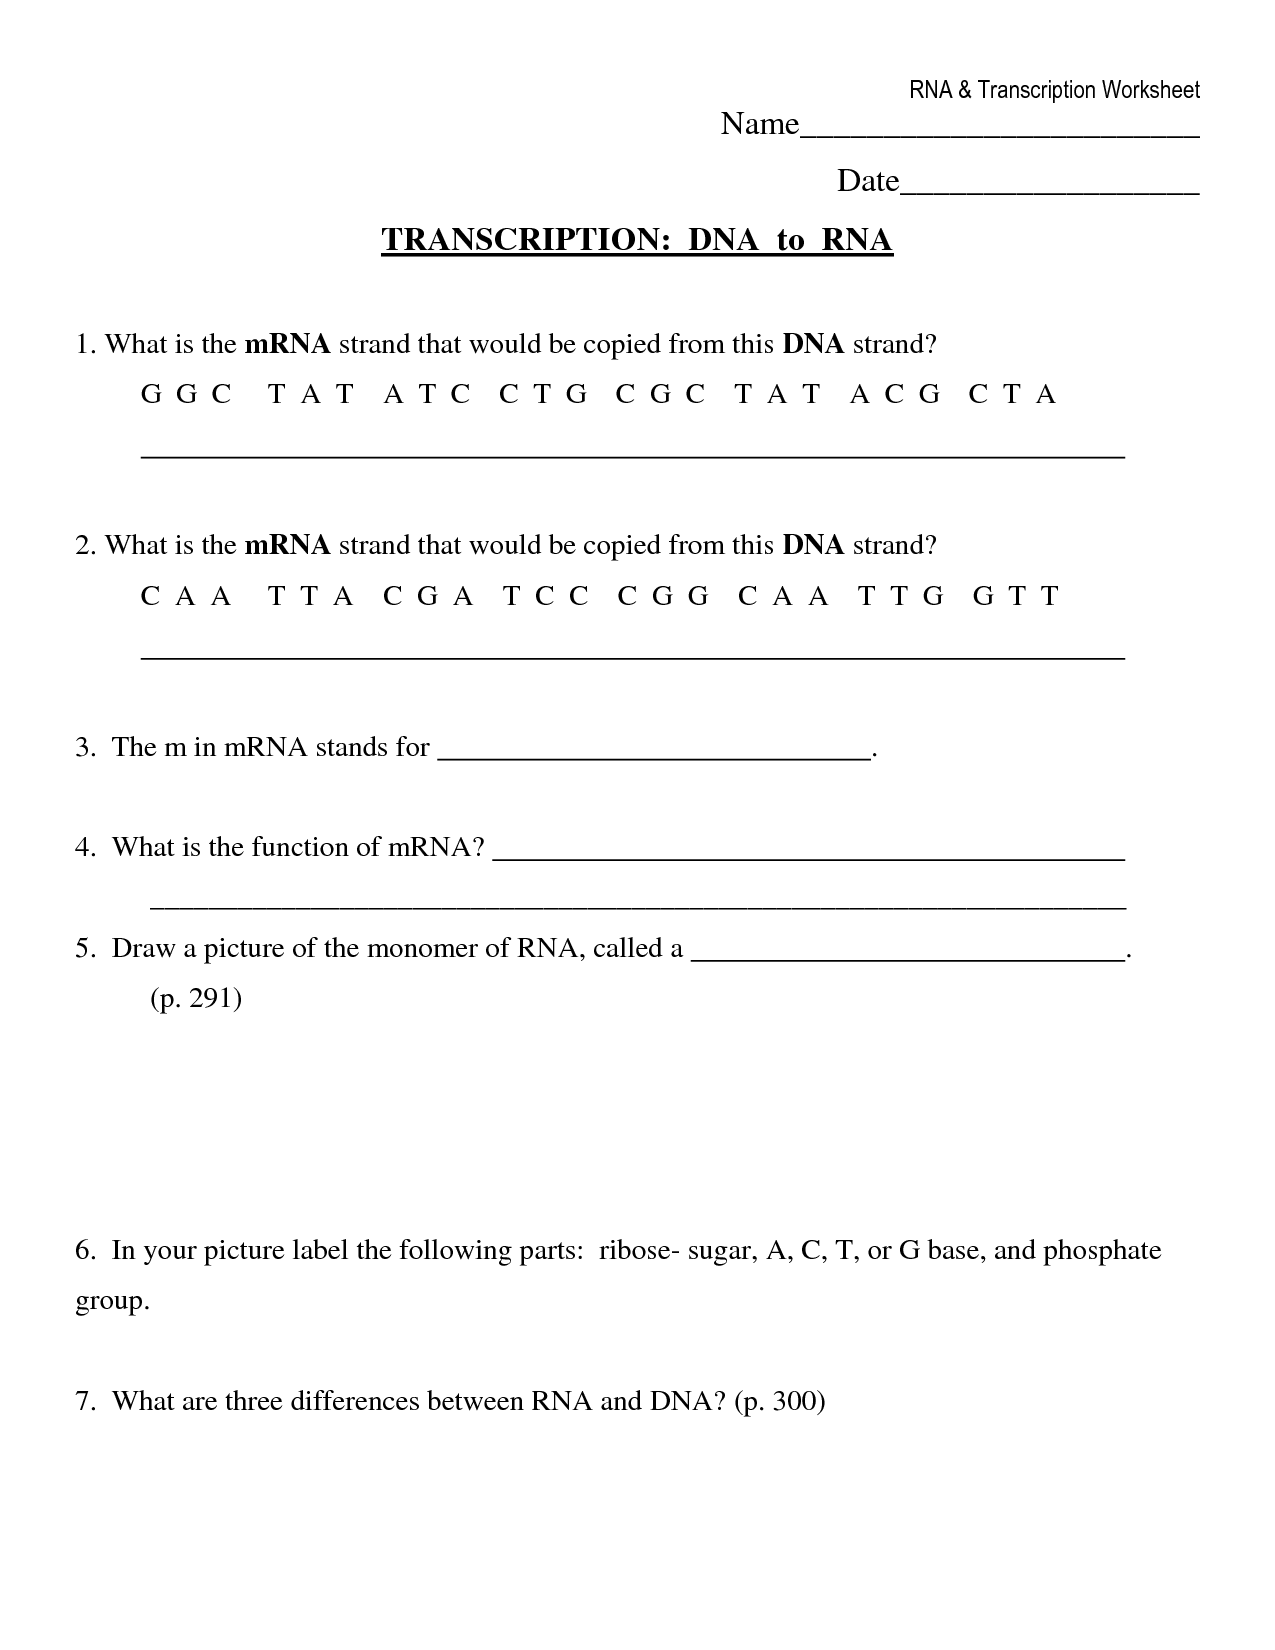 dna replication diagram worksheet stratocaster 5 way switch 15 best images of transcription and translation